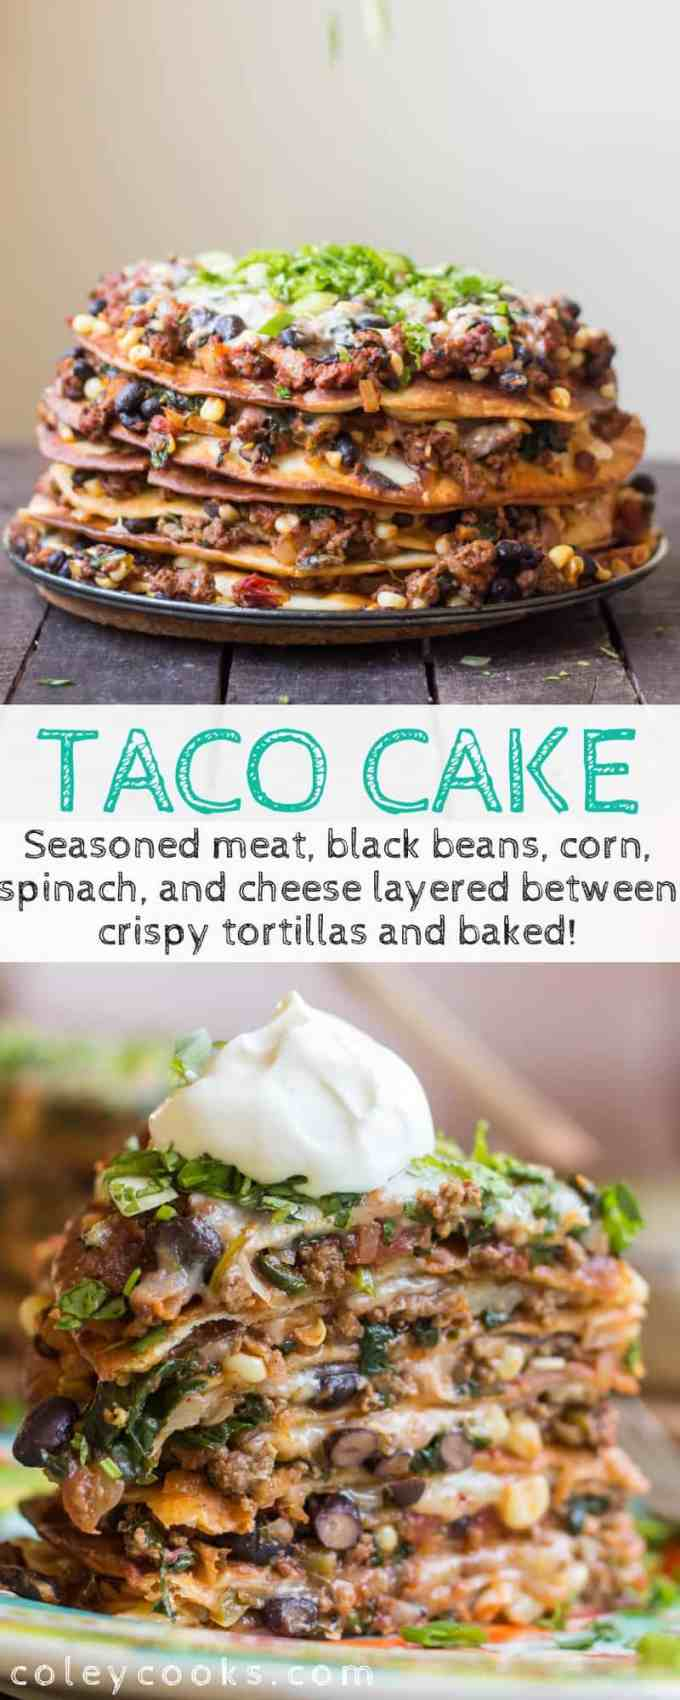 Taco Cake is a fun, layered tex Mex dinner idea! Seasoned meat, black beans, corn, spinach, and cheese layered between crispy tortillas and baked. Like Mexican Lasagna but better! #Mexican #casserole #baked #easy #recipe #cheesy #lasagna | ColeyCooks.com